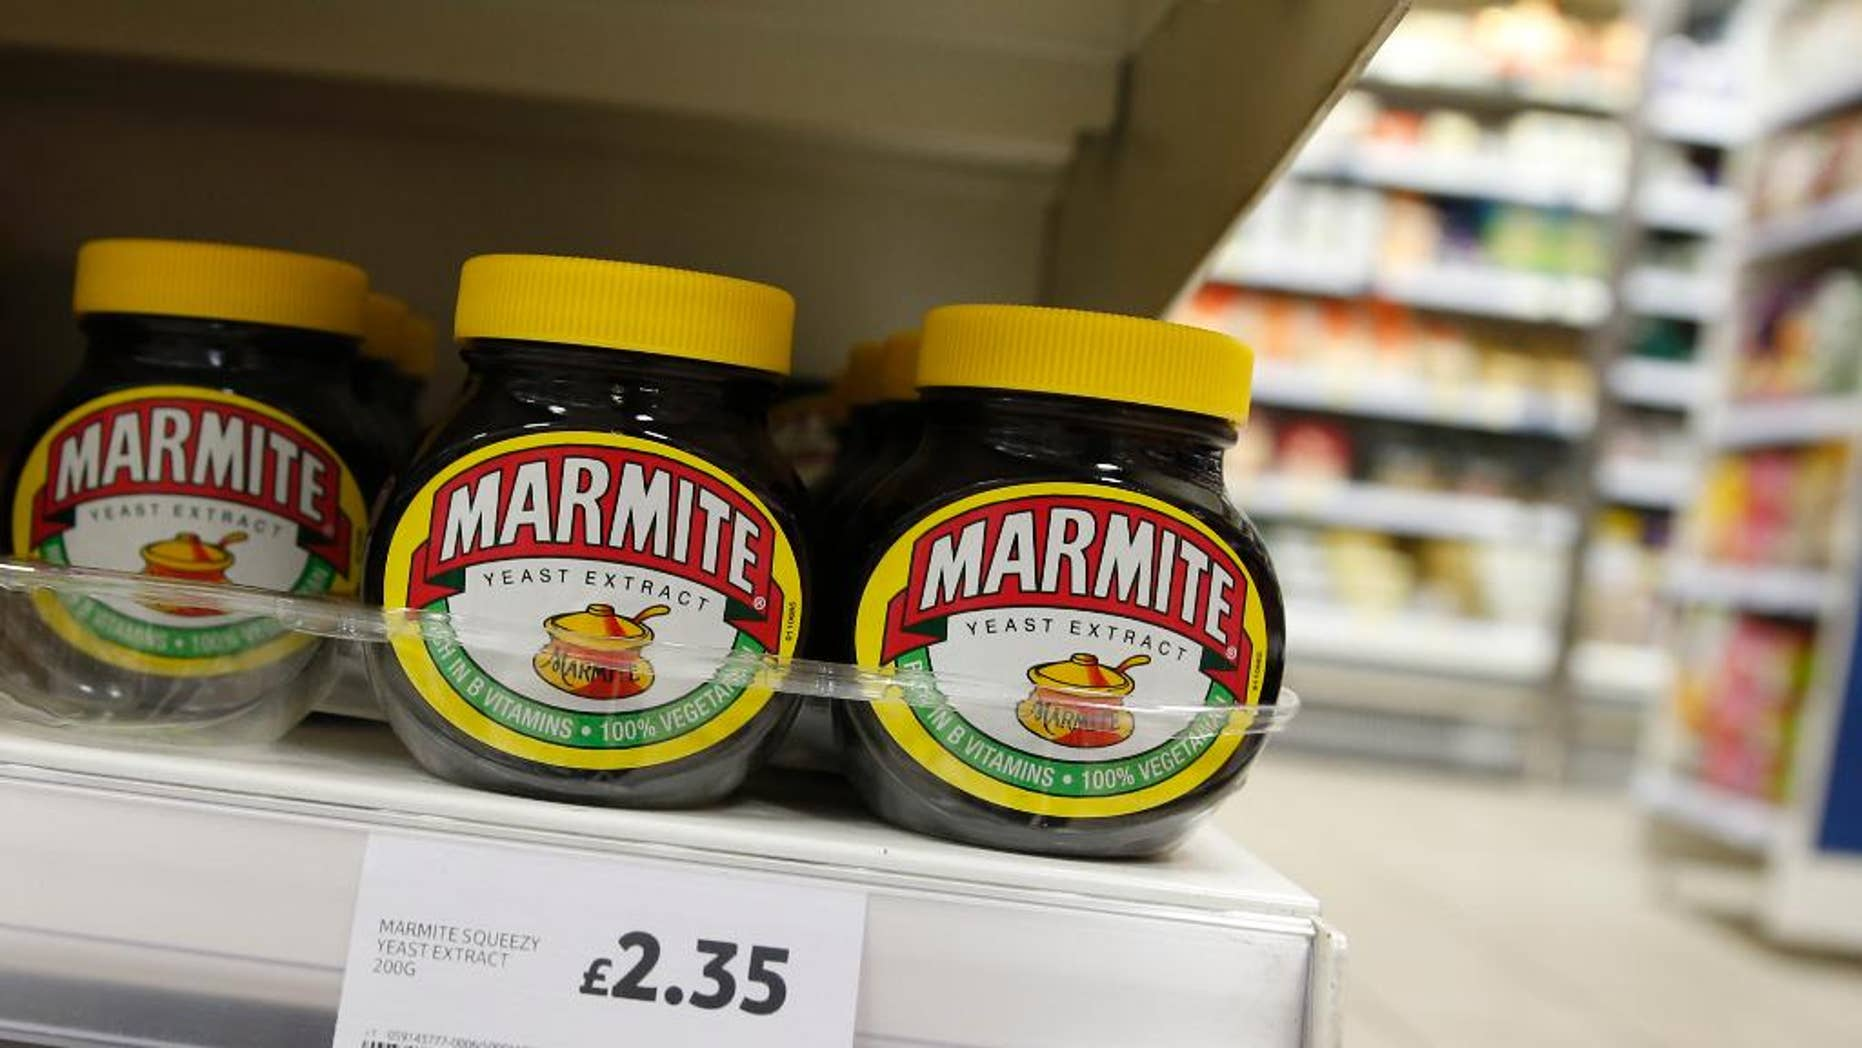 FILE - This is a Thursday, Oct. 13,2016 file photo of jars of savoury spread 'Marmite' which is owned by the Anglo-Dutch multinational Unilever, on sale in a supermarket  in central London. Consumer products giant Unilever said Thursday April 6, 2017 that it plans to sell its spreads division and combine its foods and refreshments units as part of a major review of operations prompted by a $143 billion takeover bid by rival Kraft Heinz that fell through in February.  (AP Photo/Alastair Grant)